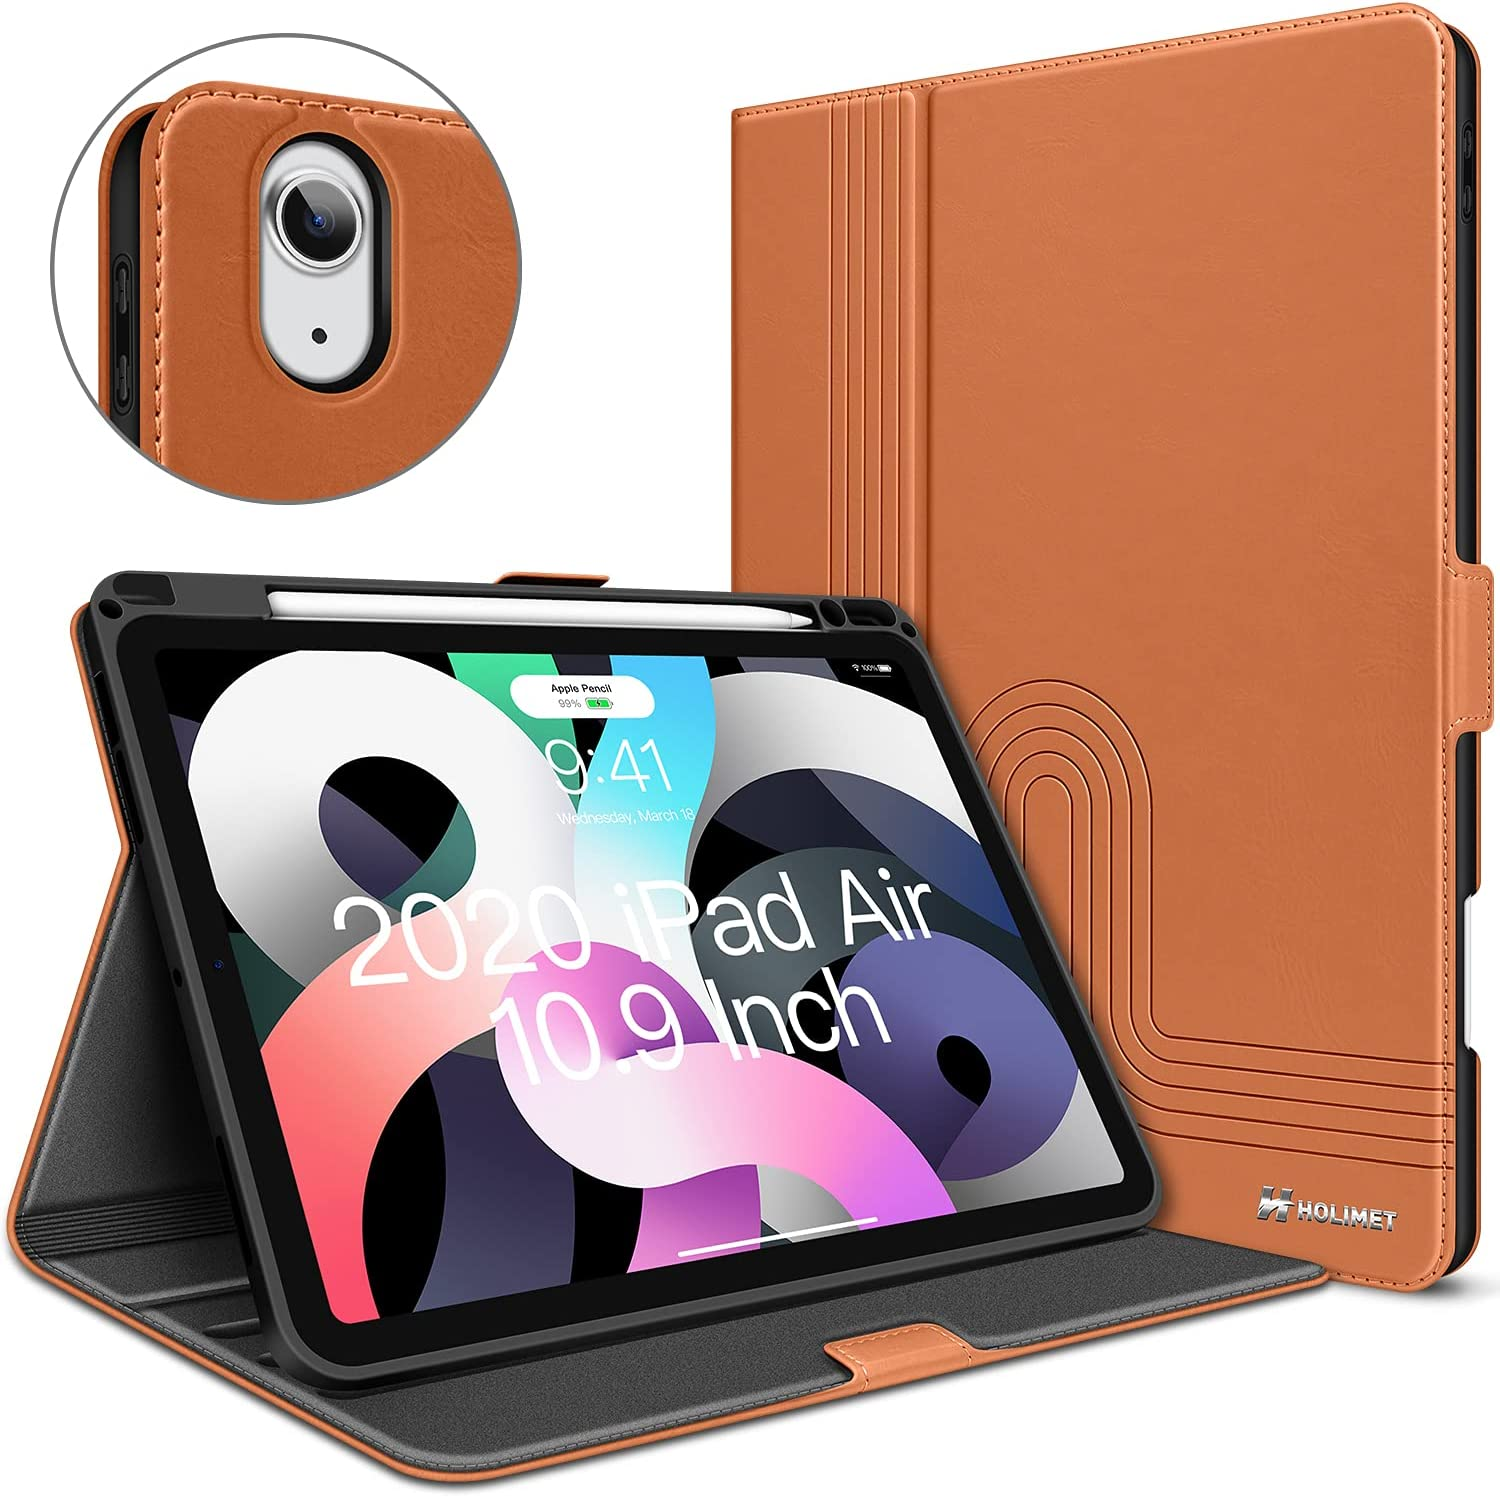 iPad Air 4th Generation Case for 10.9 Inch iPad Air 4 PU Leather Case Folio Stand Protective Cover Cases for iPad Air 4th Gen 2020 with Pencile Holder Auto Sleep/Wake Magnetic Closure, Caramel Brown